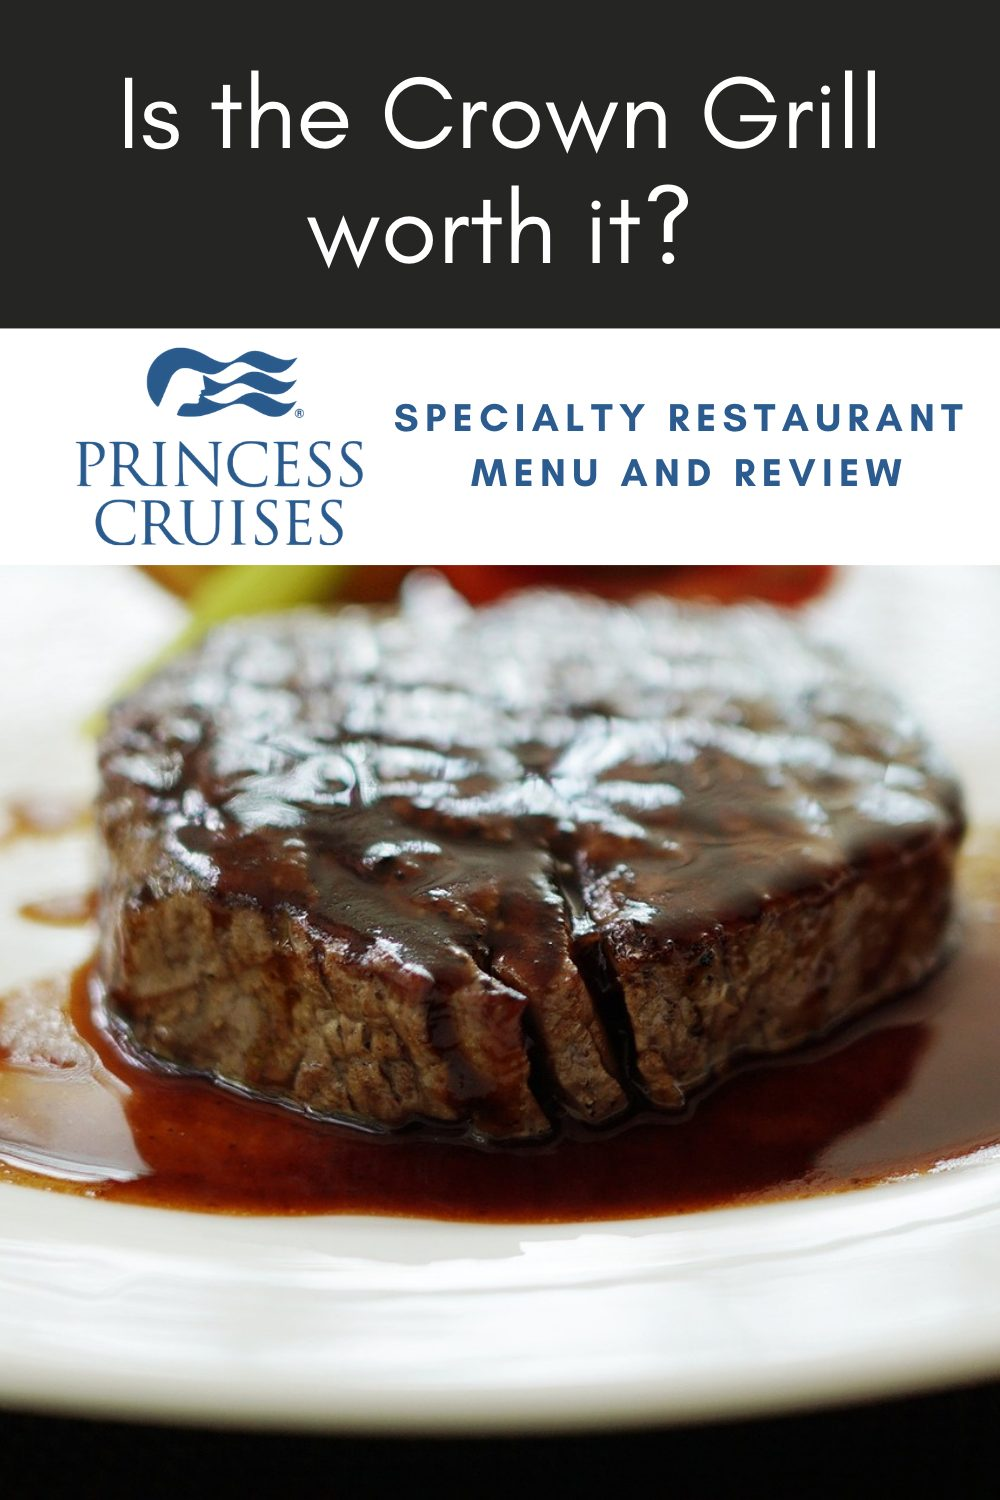 The Crown Grill on Princess Cruises is one of the best steakhouses at sea. Take a look at the menu and discover what makes it special.